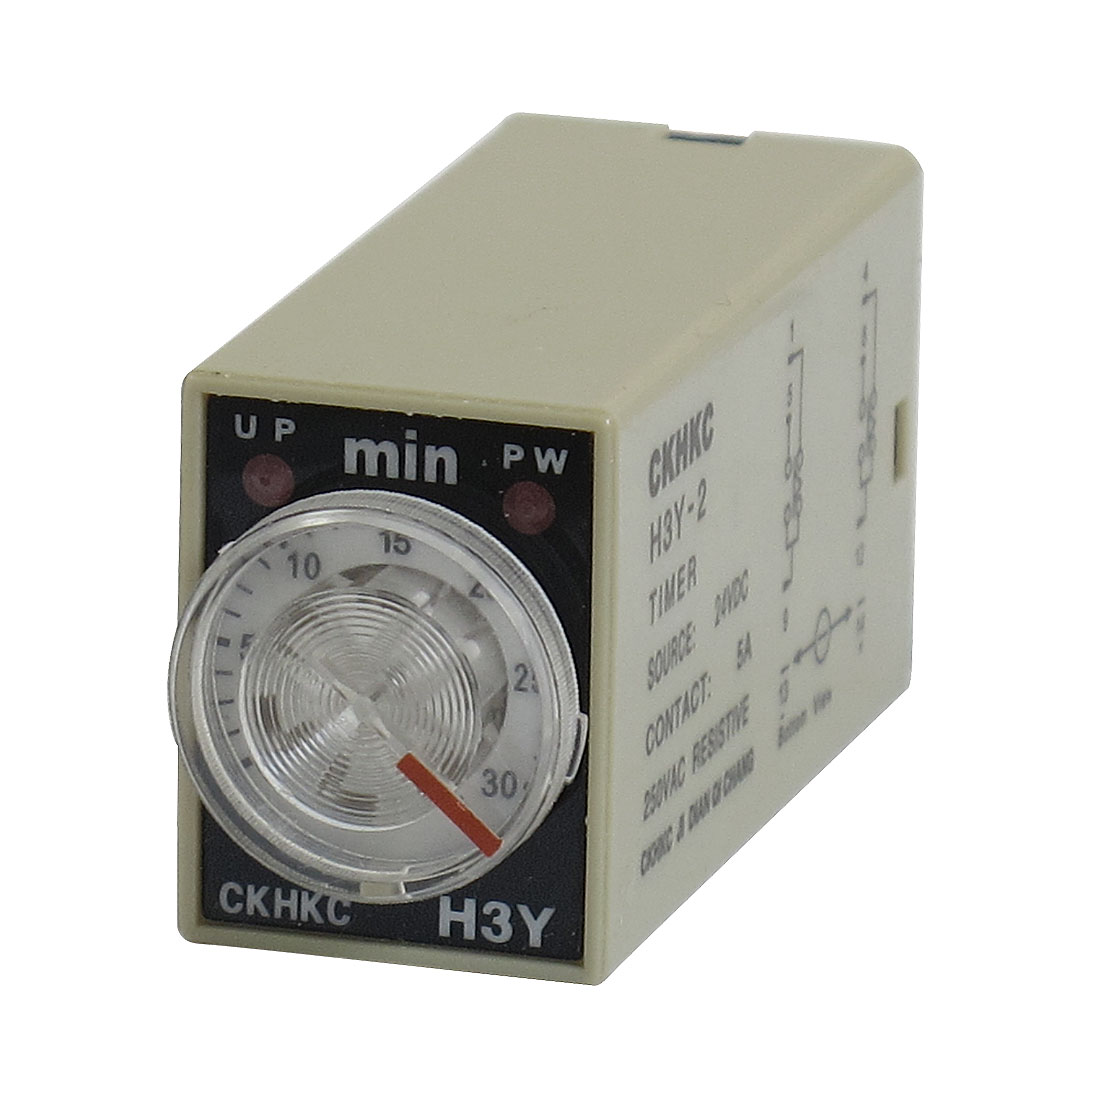 H3Y-2 DC 24V DPDT 0-30 Minutes 30M 8 Pins Power on Time Delay Relay